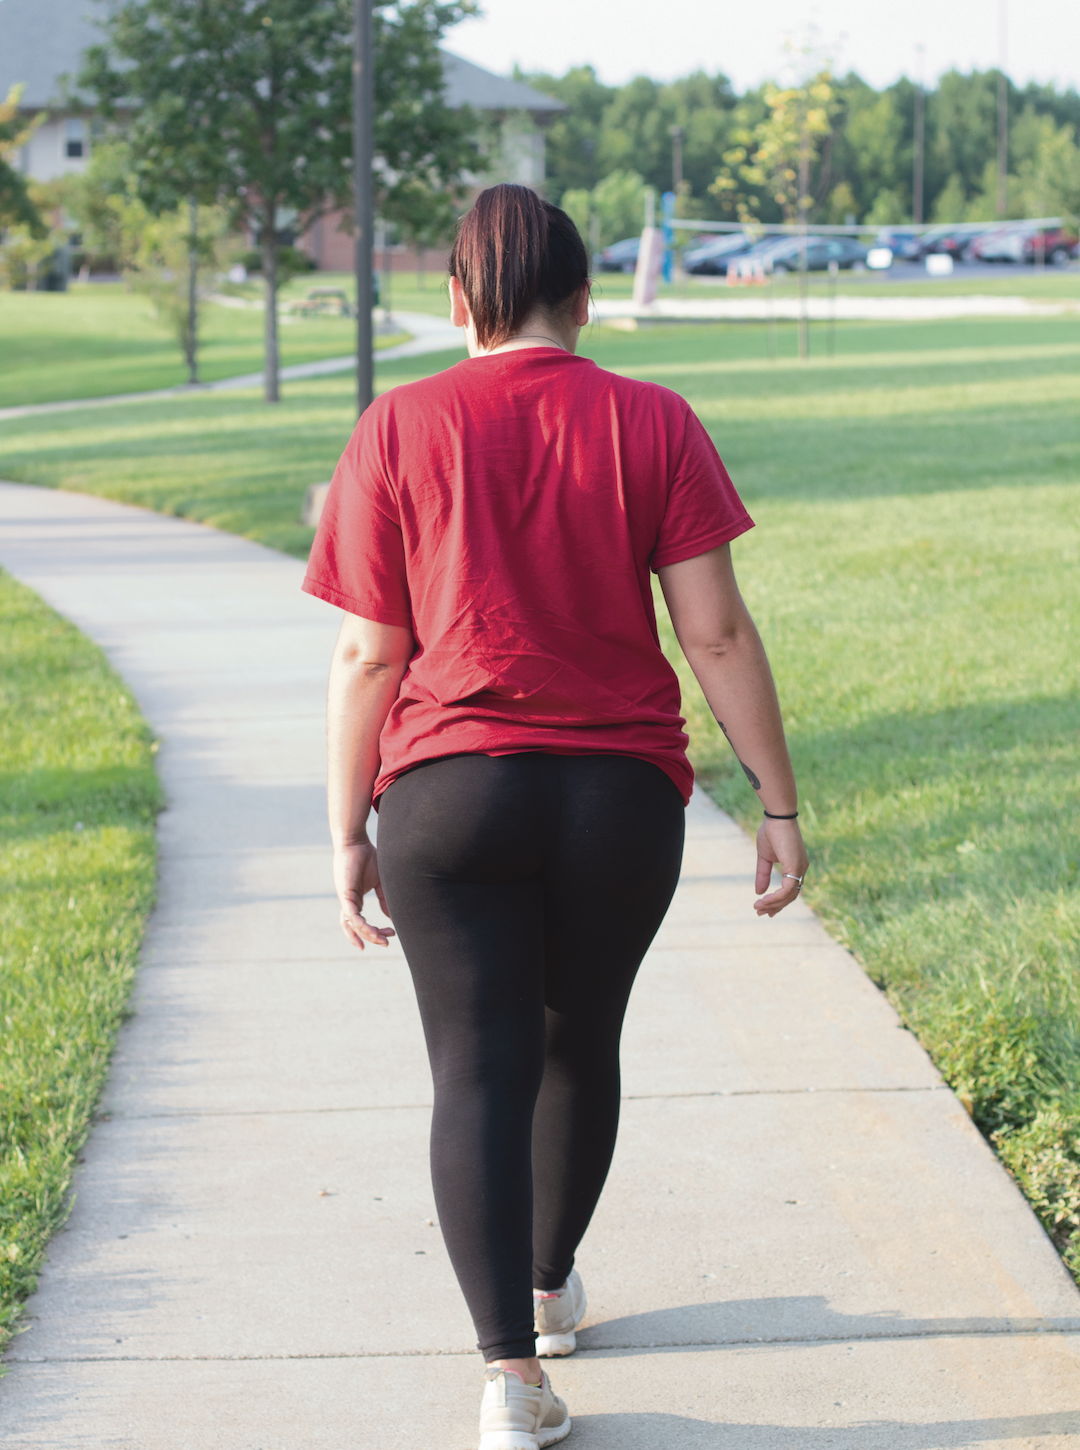 The infamous walk of shame: A walk that begins the night before, filled with excitement and anticipation of what is to come. But what actually defines the walk of shame?